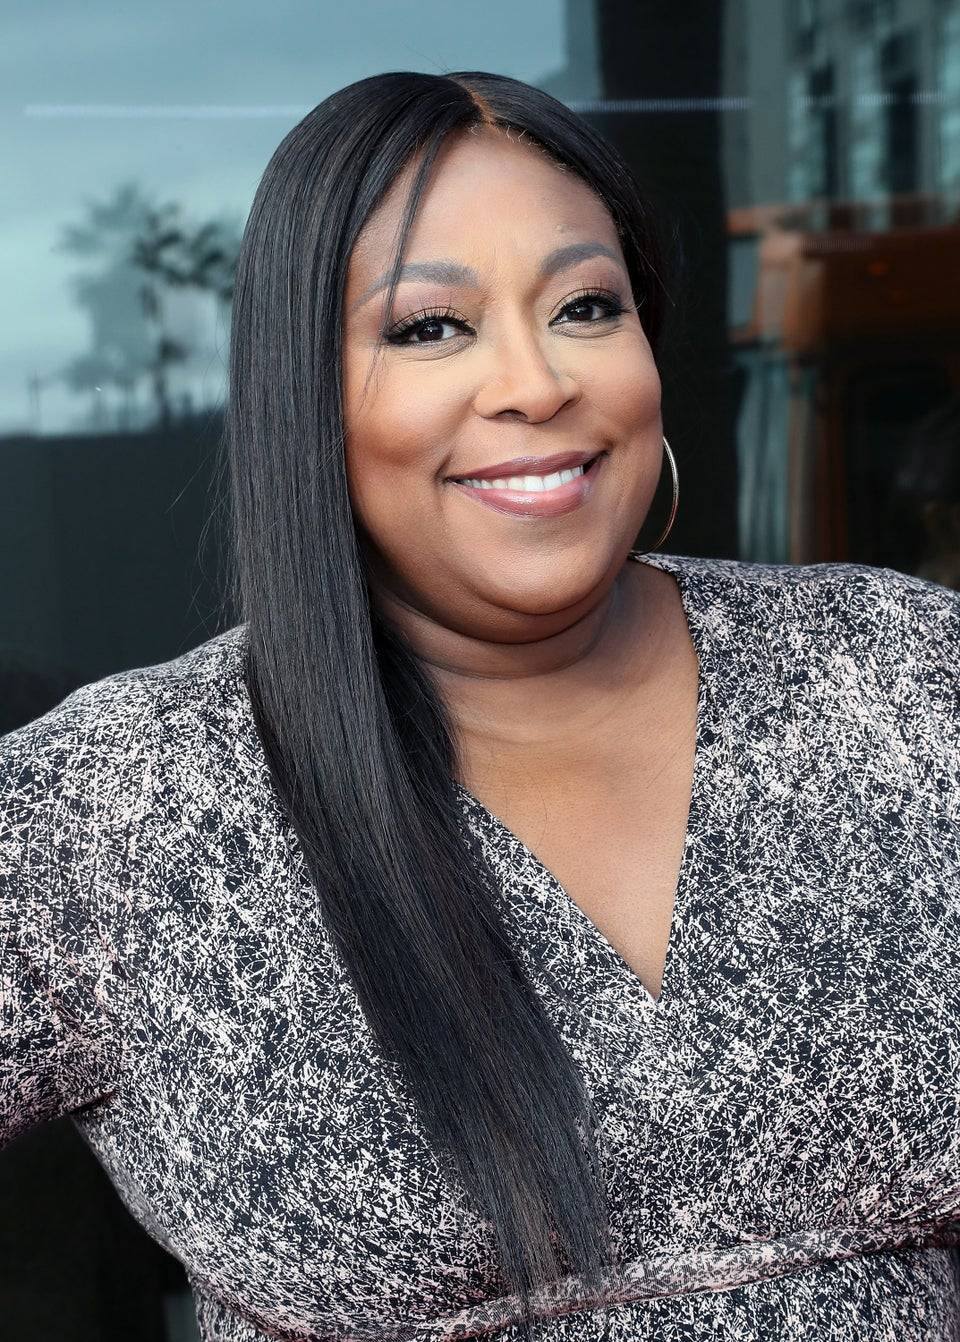 Loni Love Opens Up About Miscarriage That Stopped Her From Wanting to Have More Kids